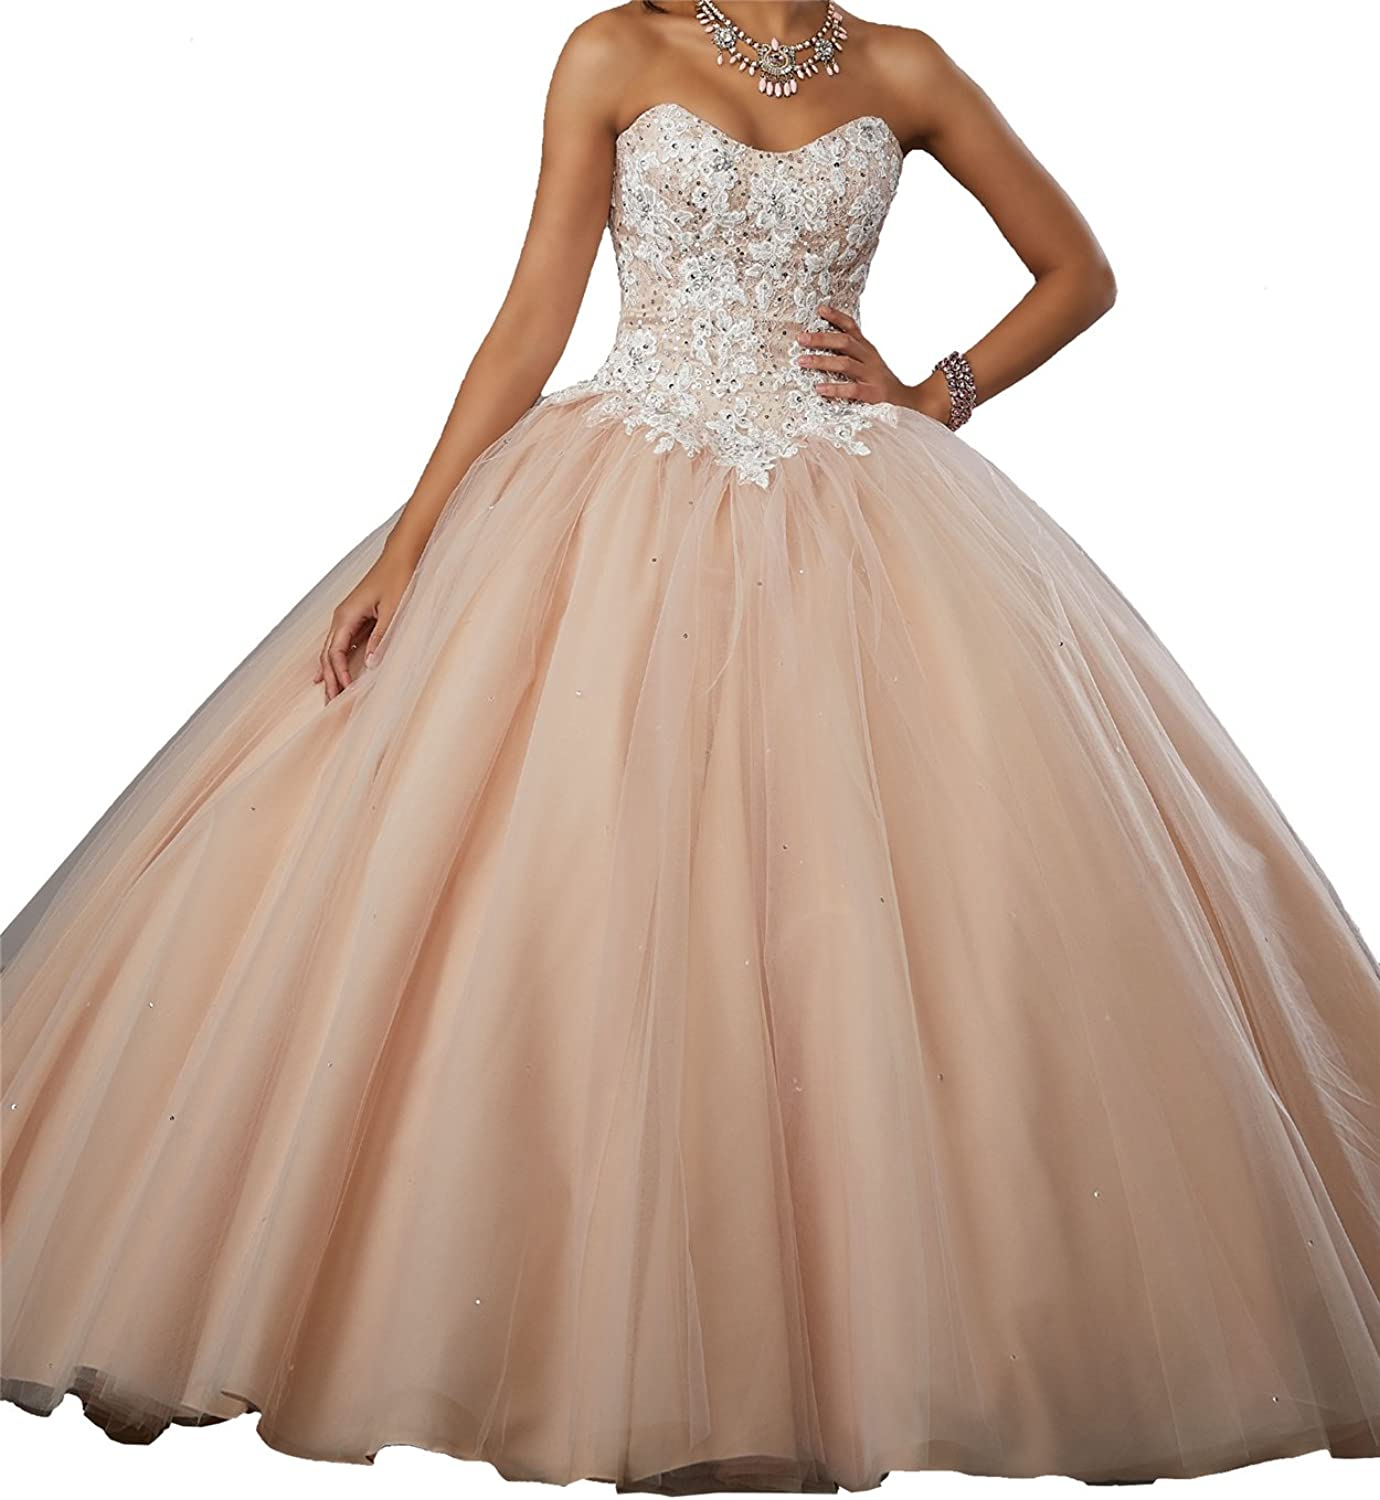 Yang Women Strapless Beaded Tulle Pageant Party Dress Girls Ball Gowns